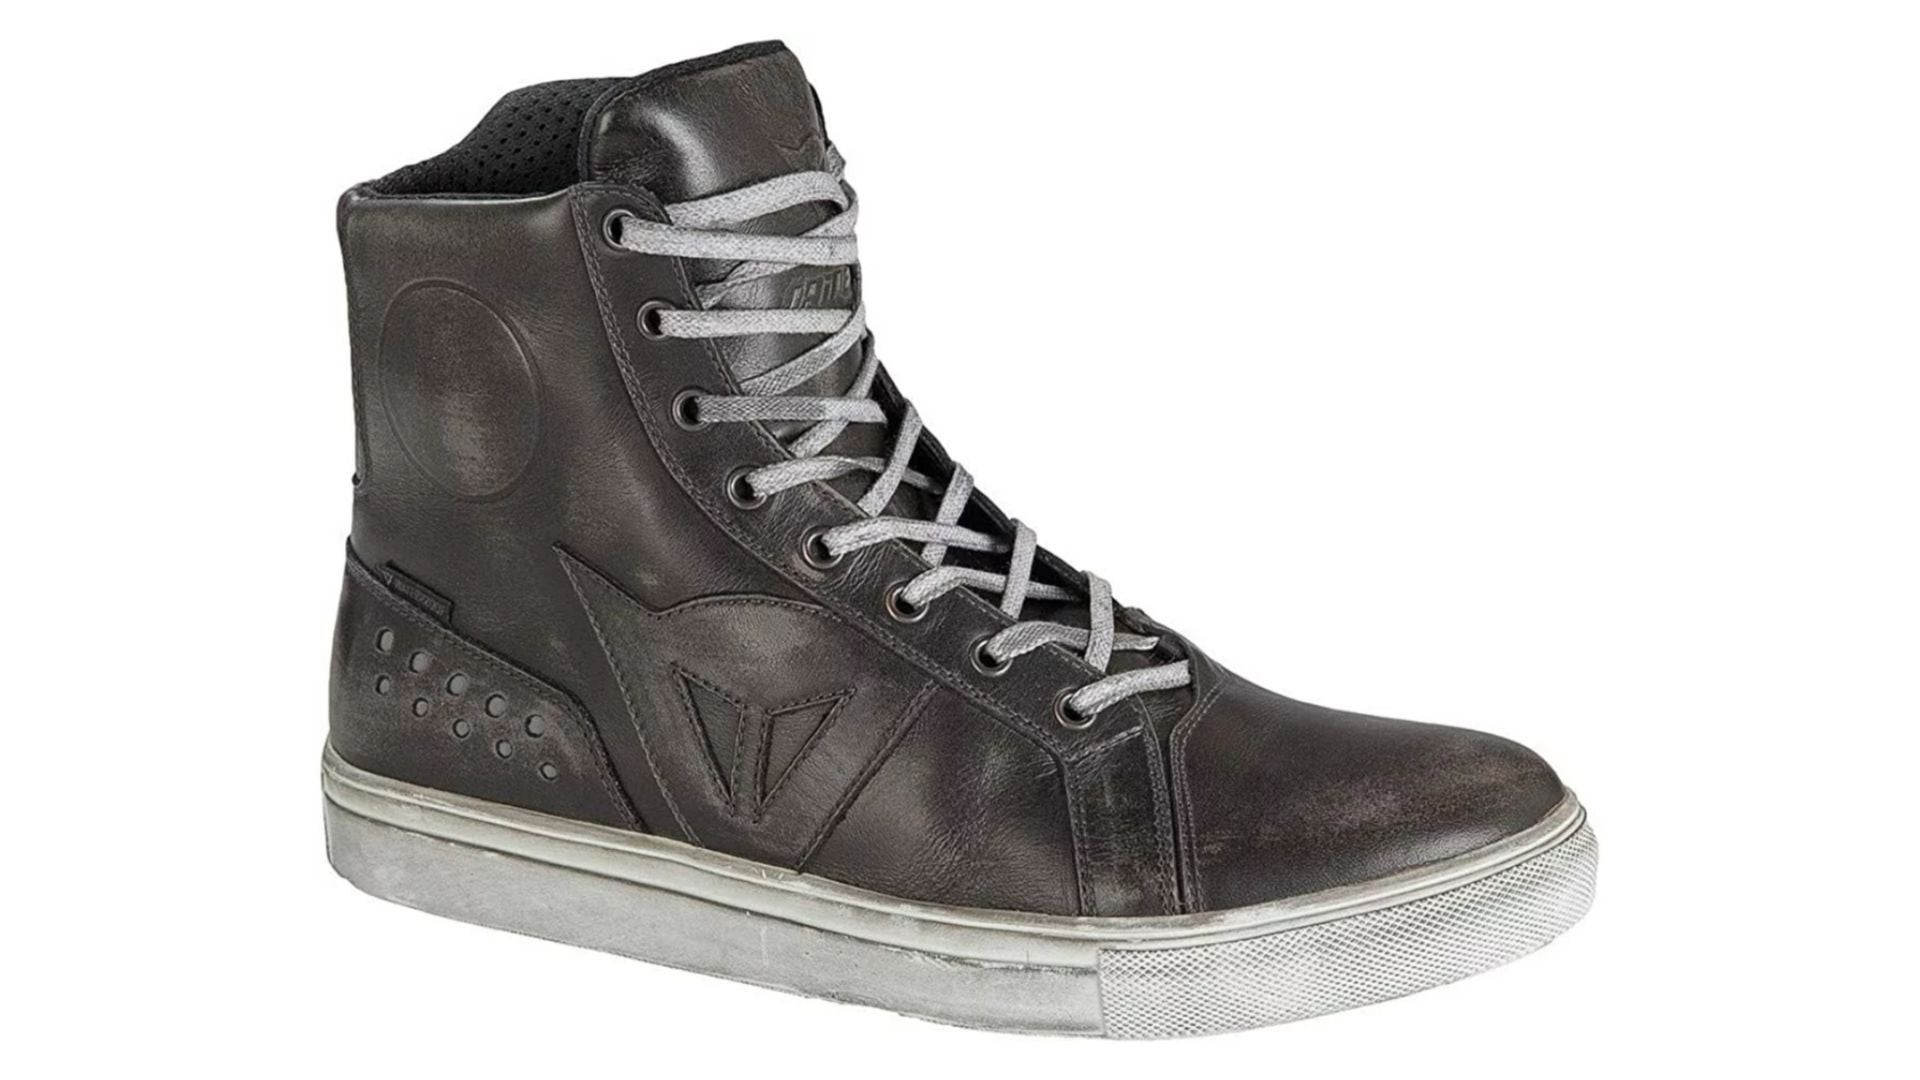 Dainese Men's Motorcycle Shoes